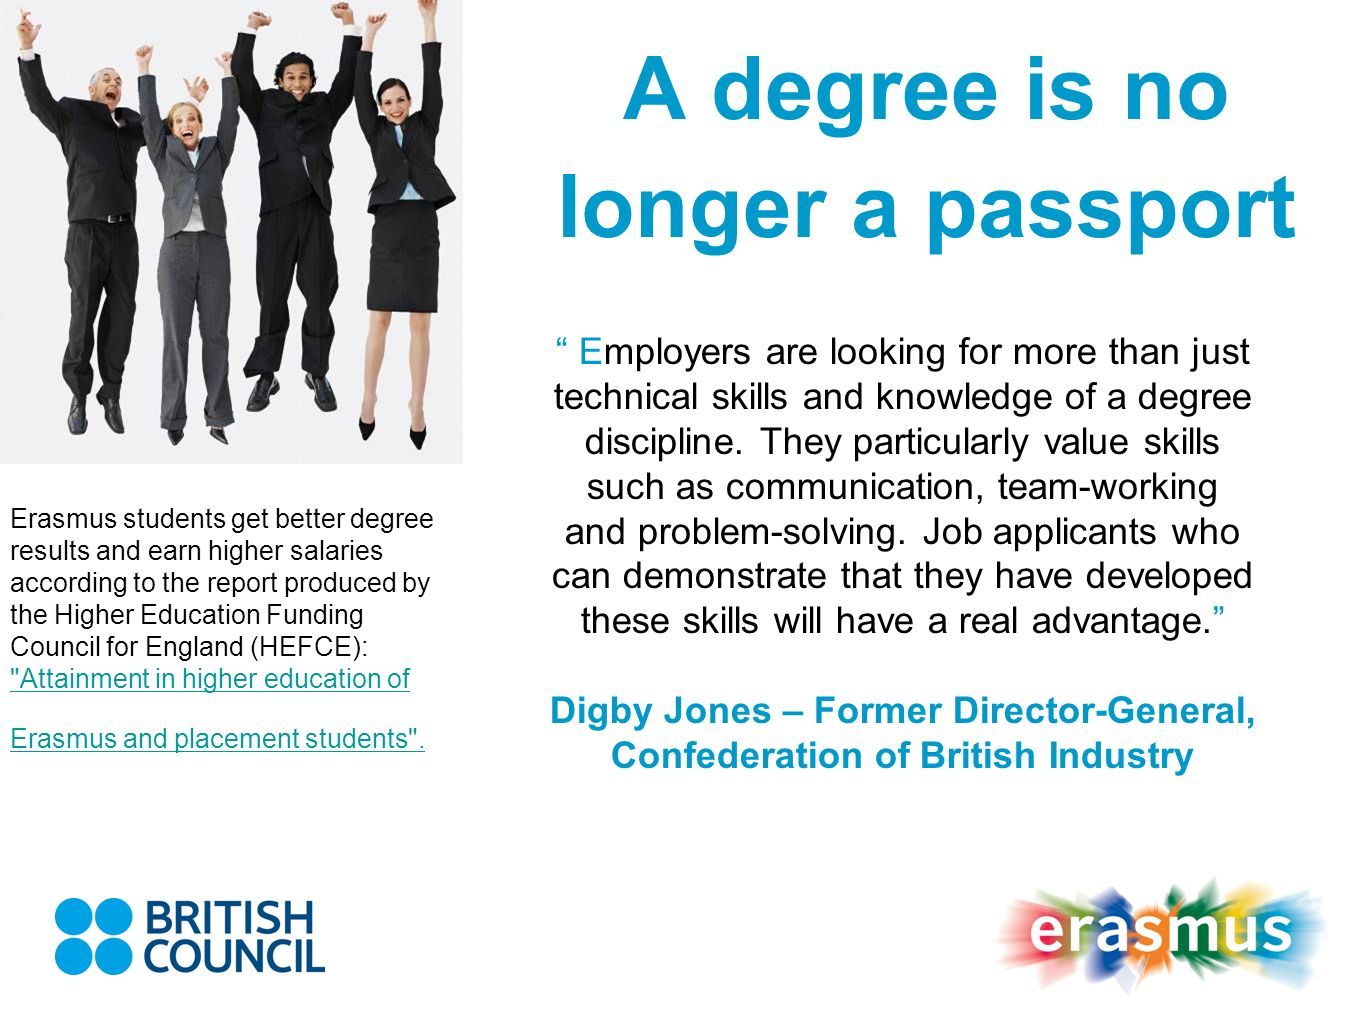 A degree is no longer a passport